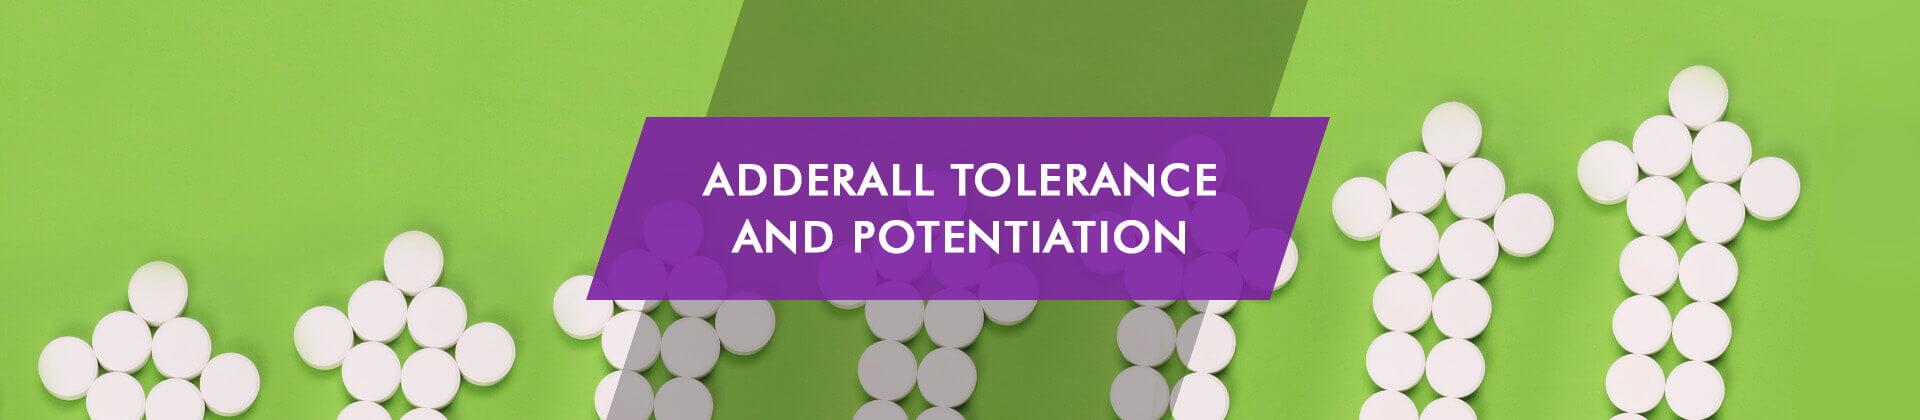 Adderall Tolerance and Potentiation: How to Get Most of Stimulants